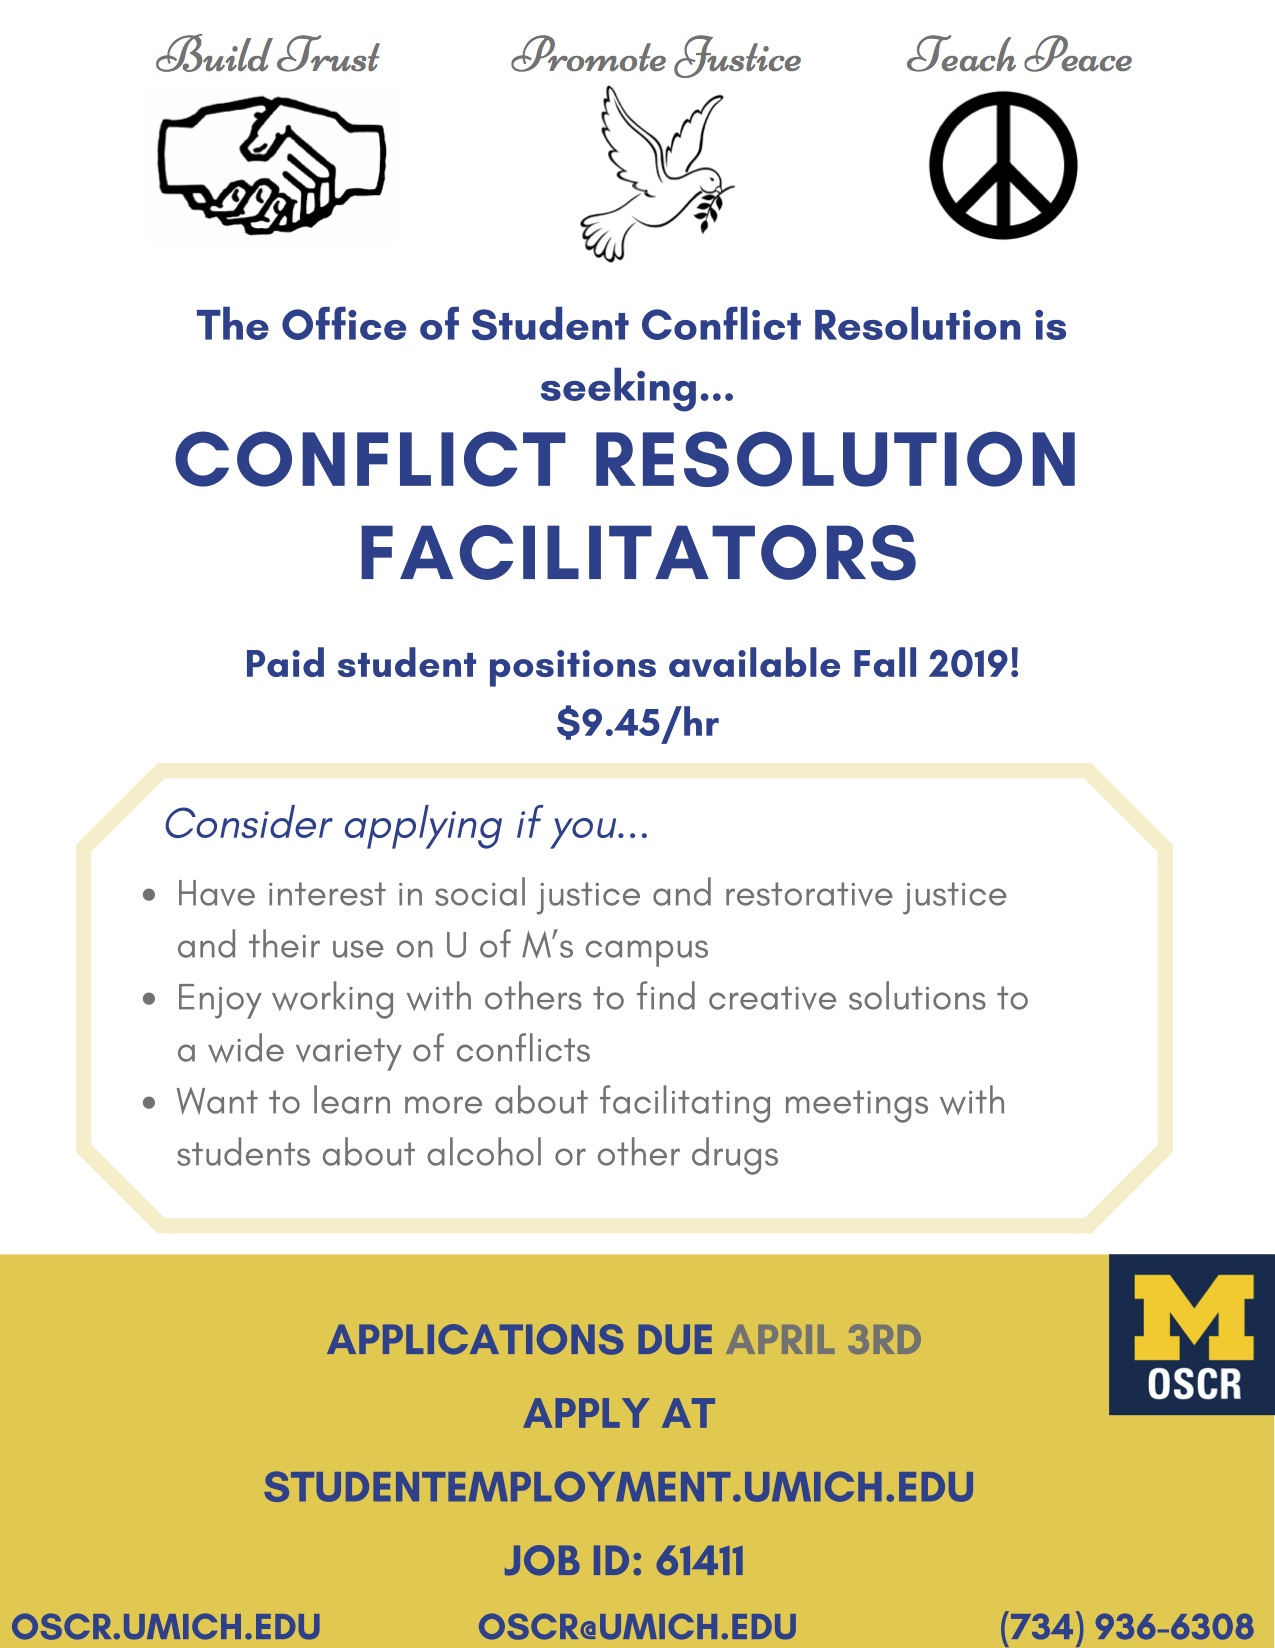 Conflict Resolution Facilitator Job Posting Flyer